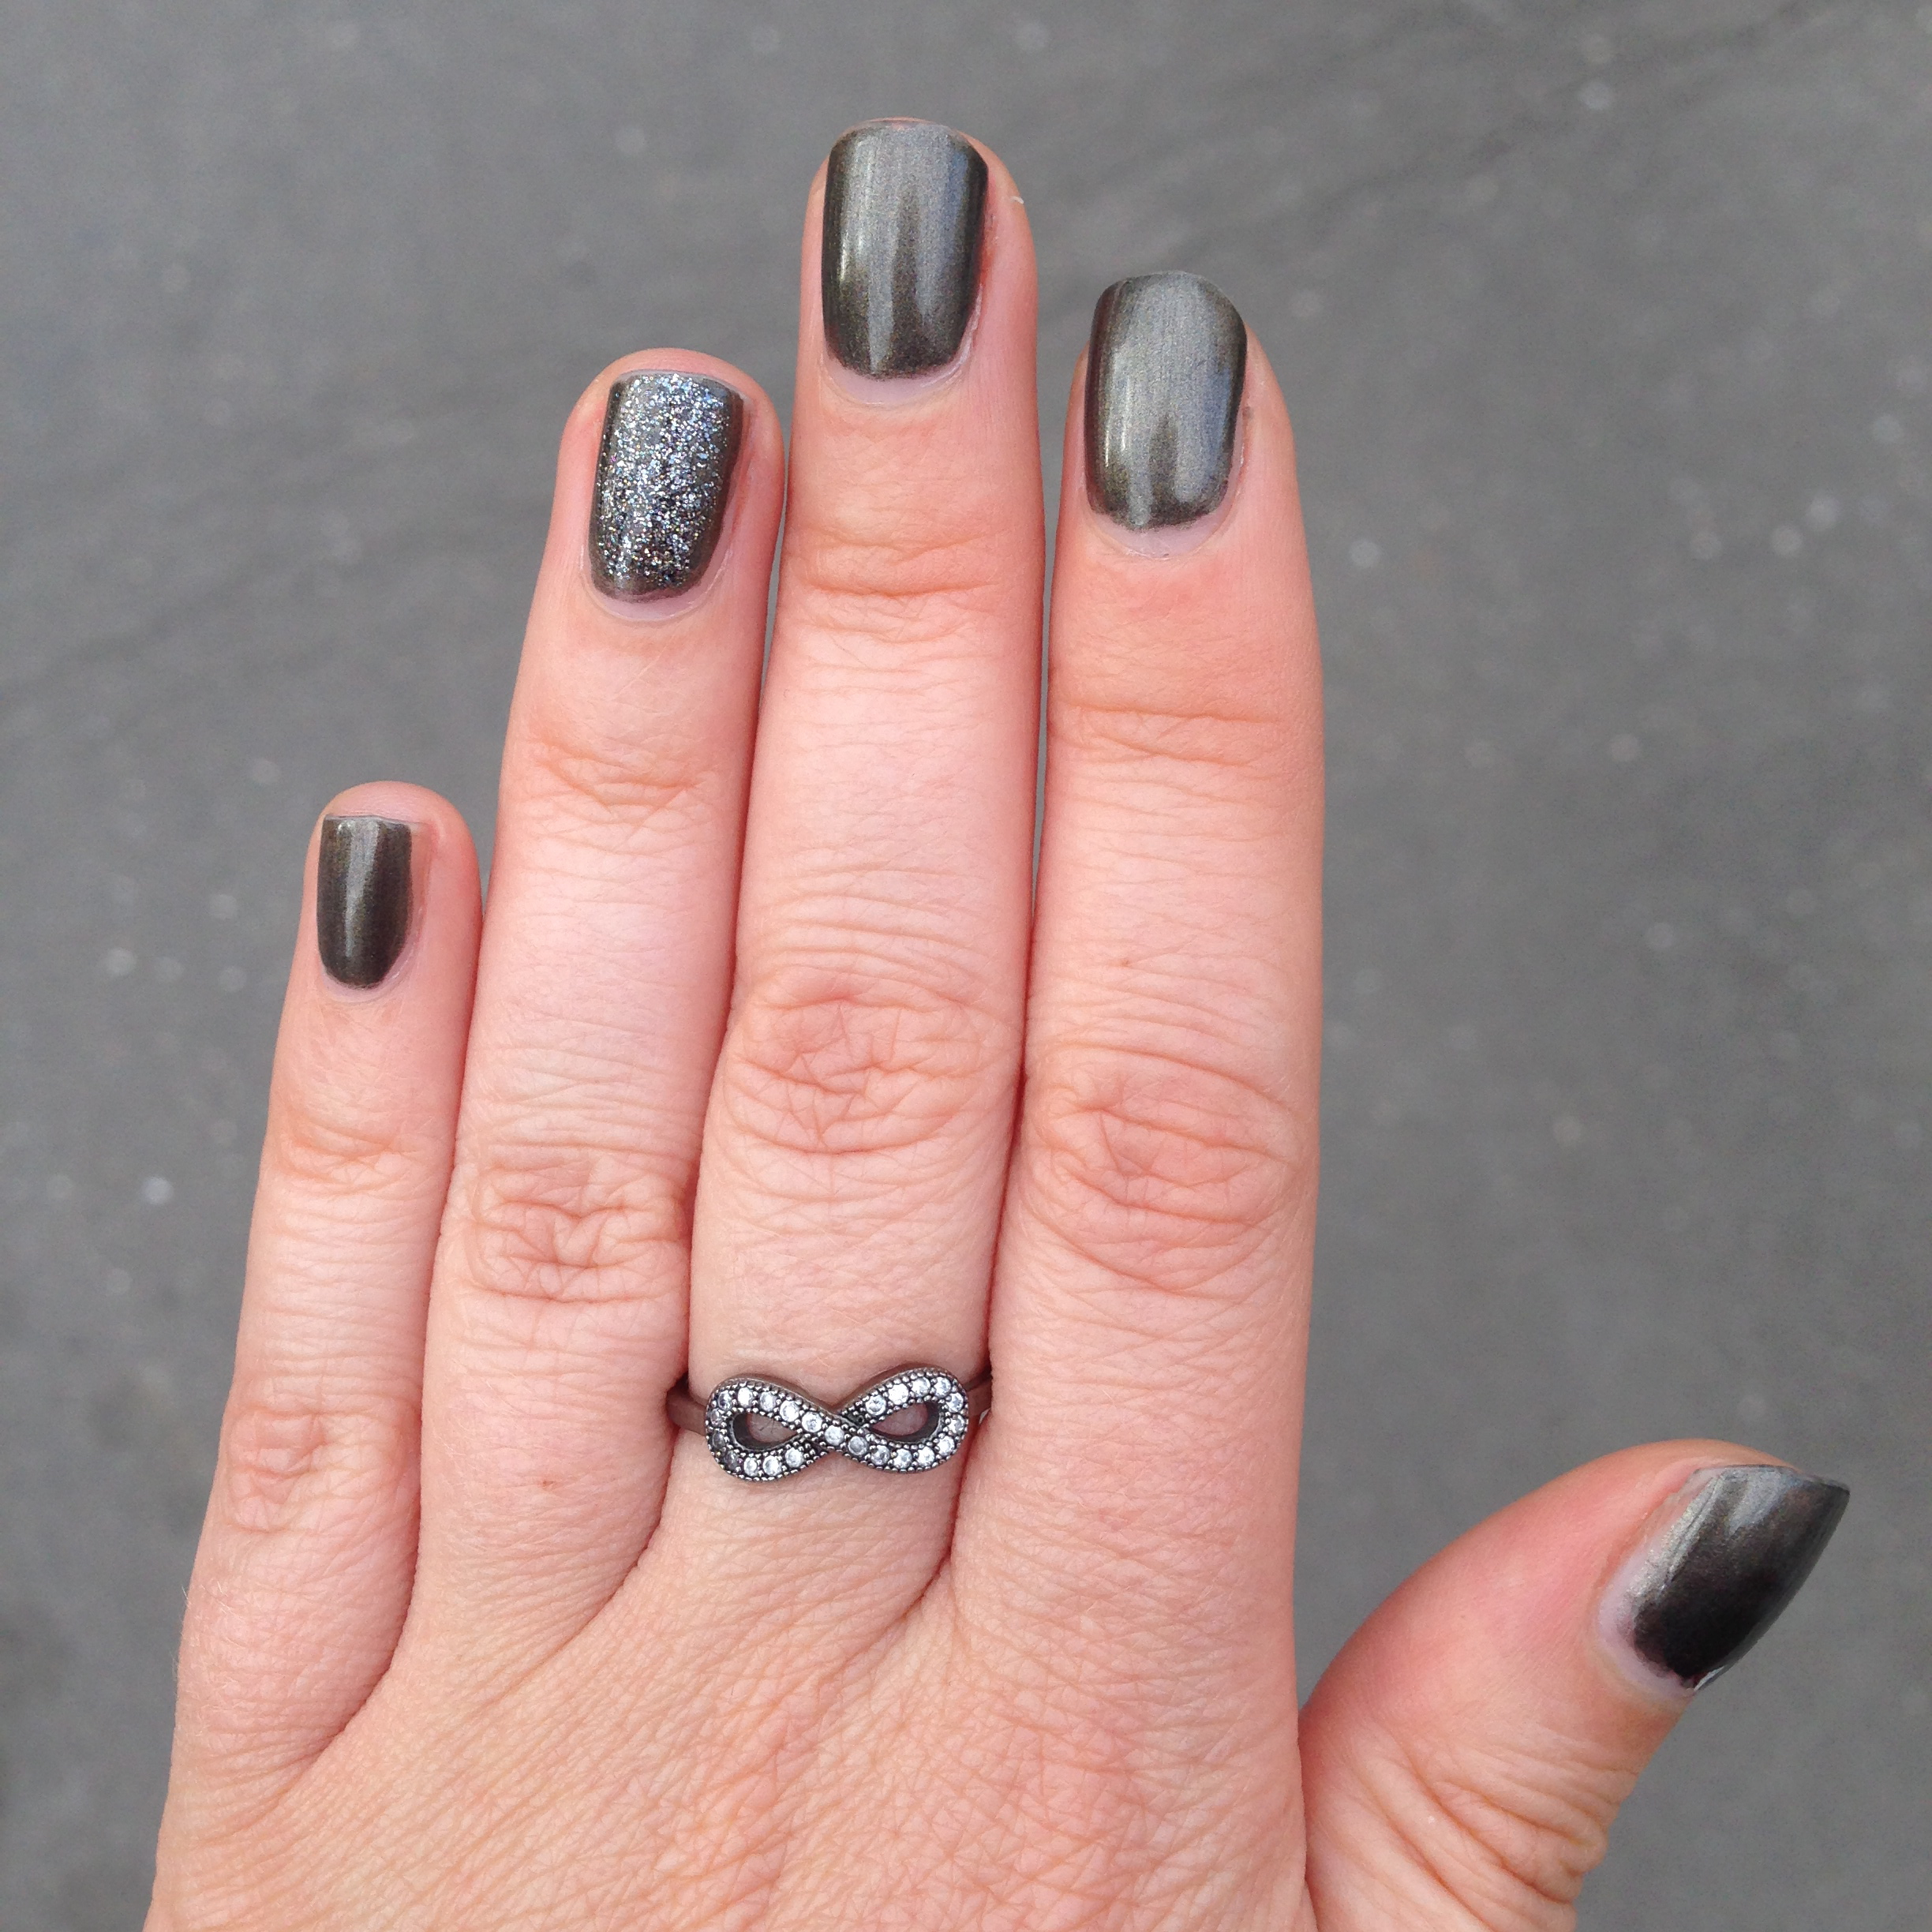 Vernis Avril acier nacré et accent bail Essie Ignite the night J+5